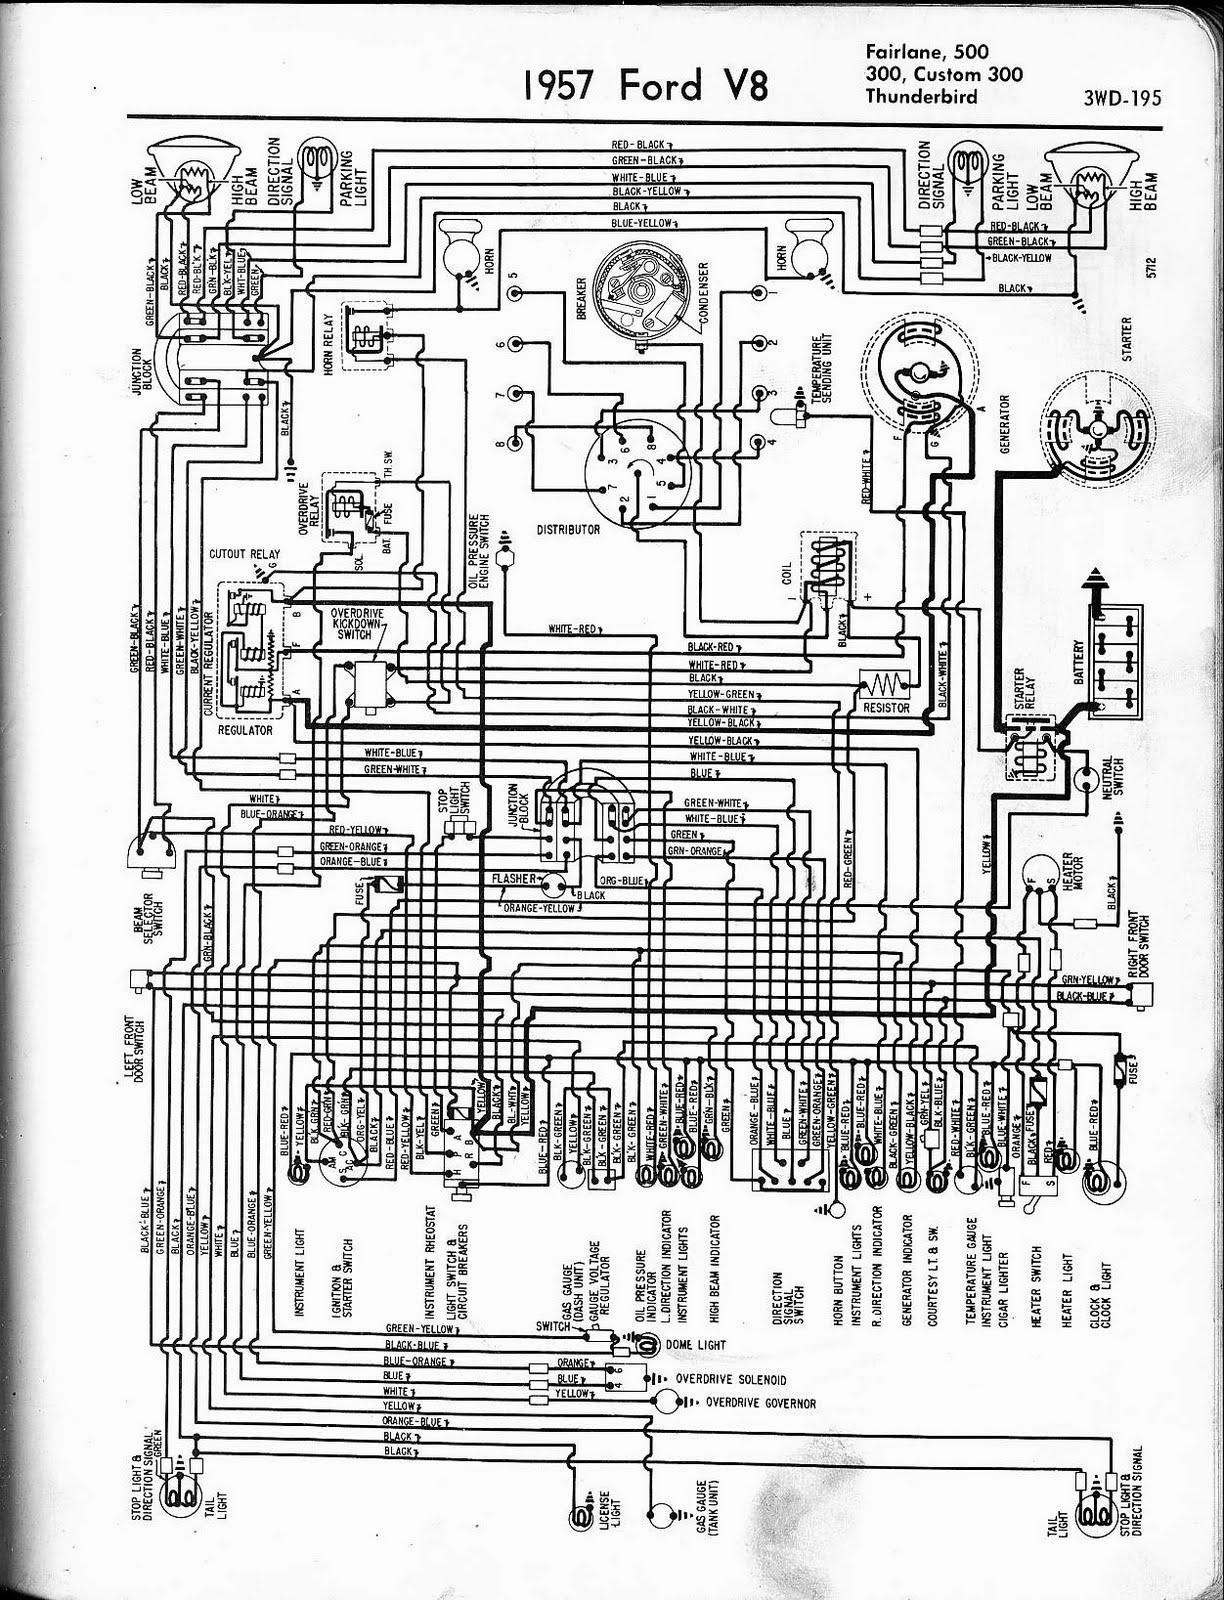 hight resolution of 1956 ford wiring diagram wiring diagram for you 1959 ford f100 wiring diagram 1957 ford f100 wiring diagram